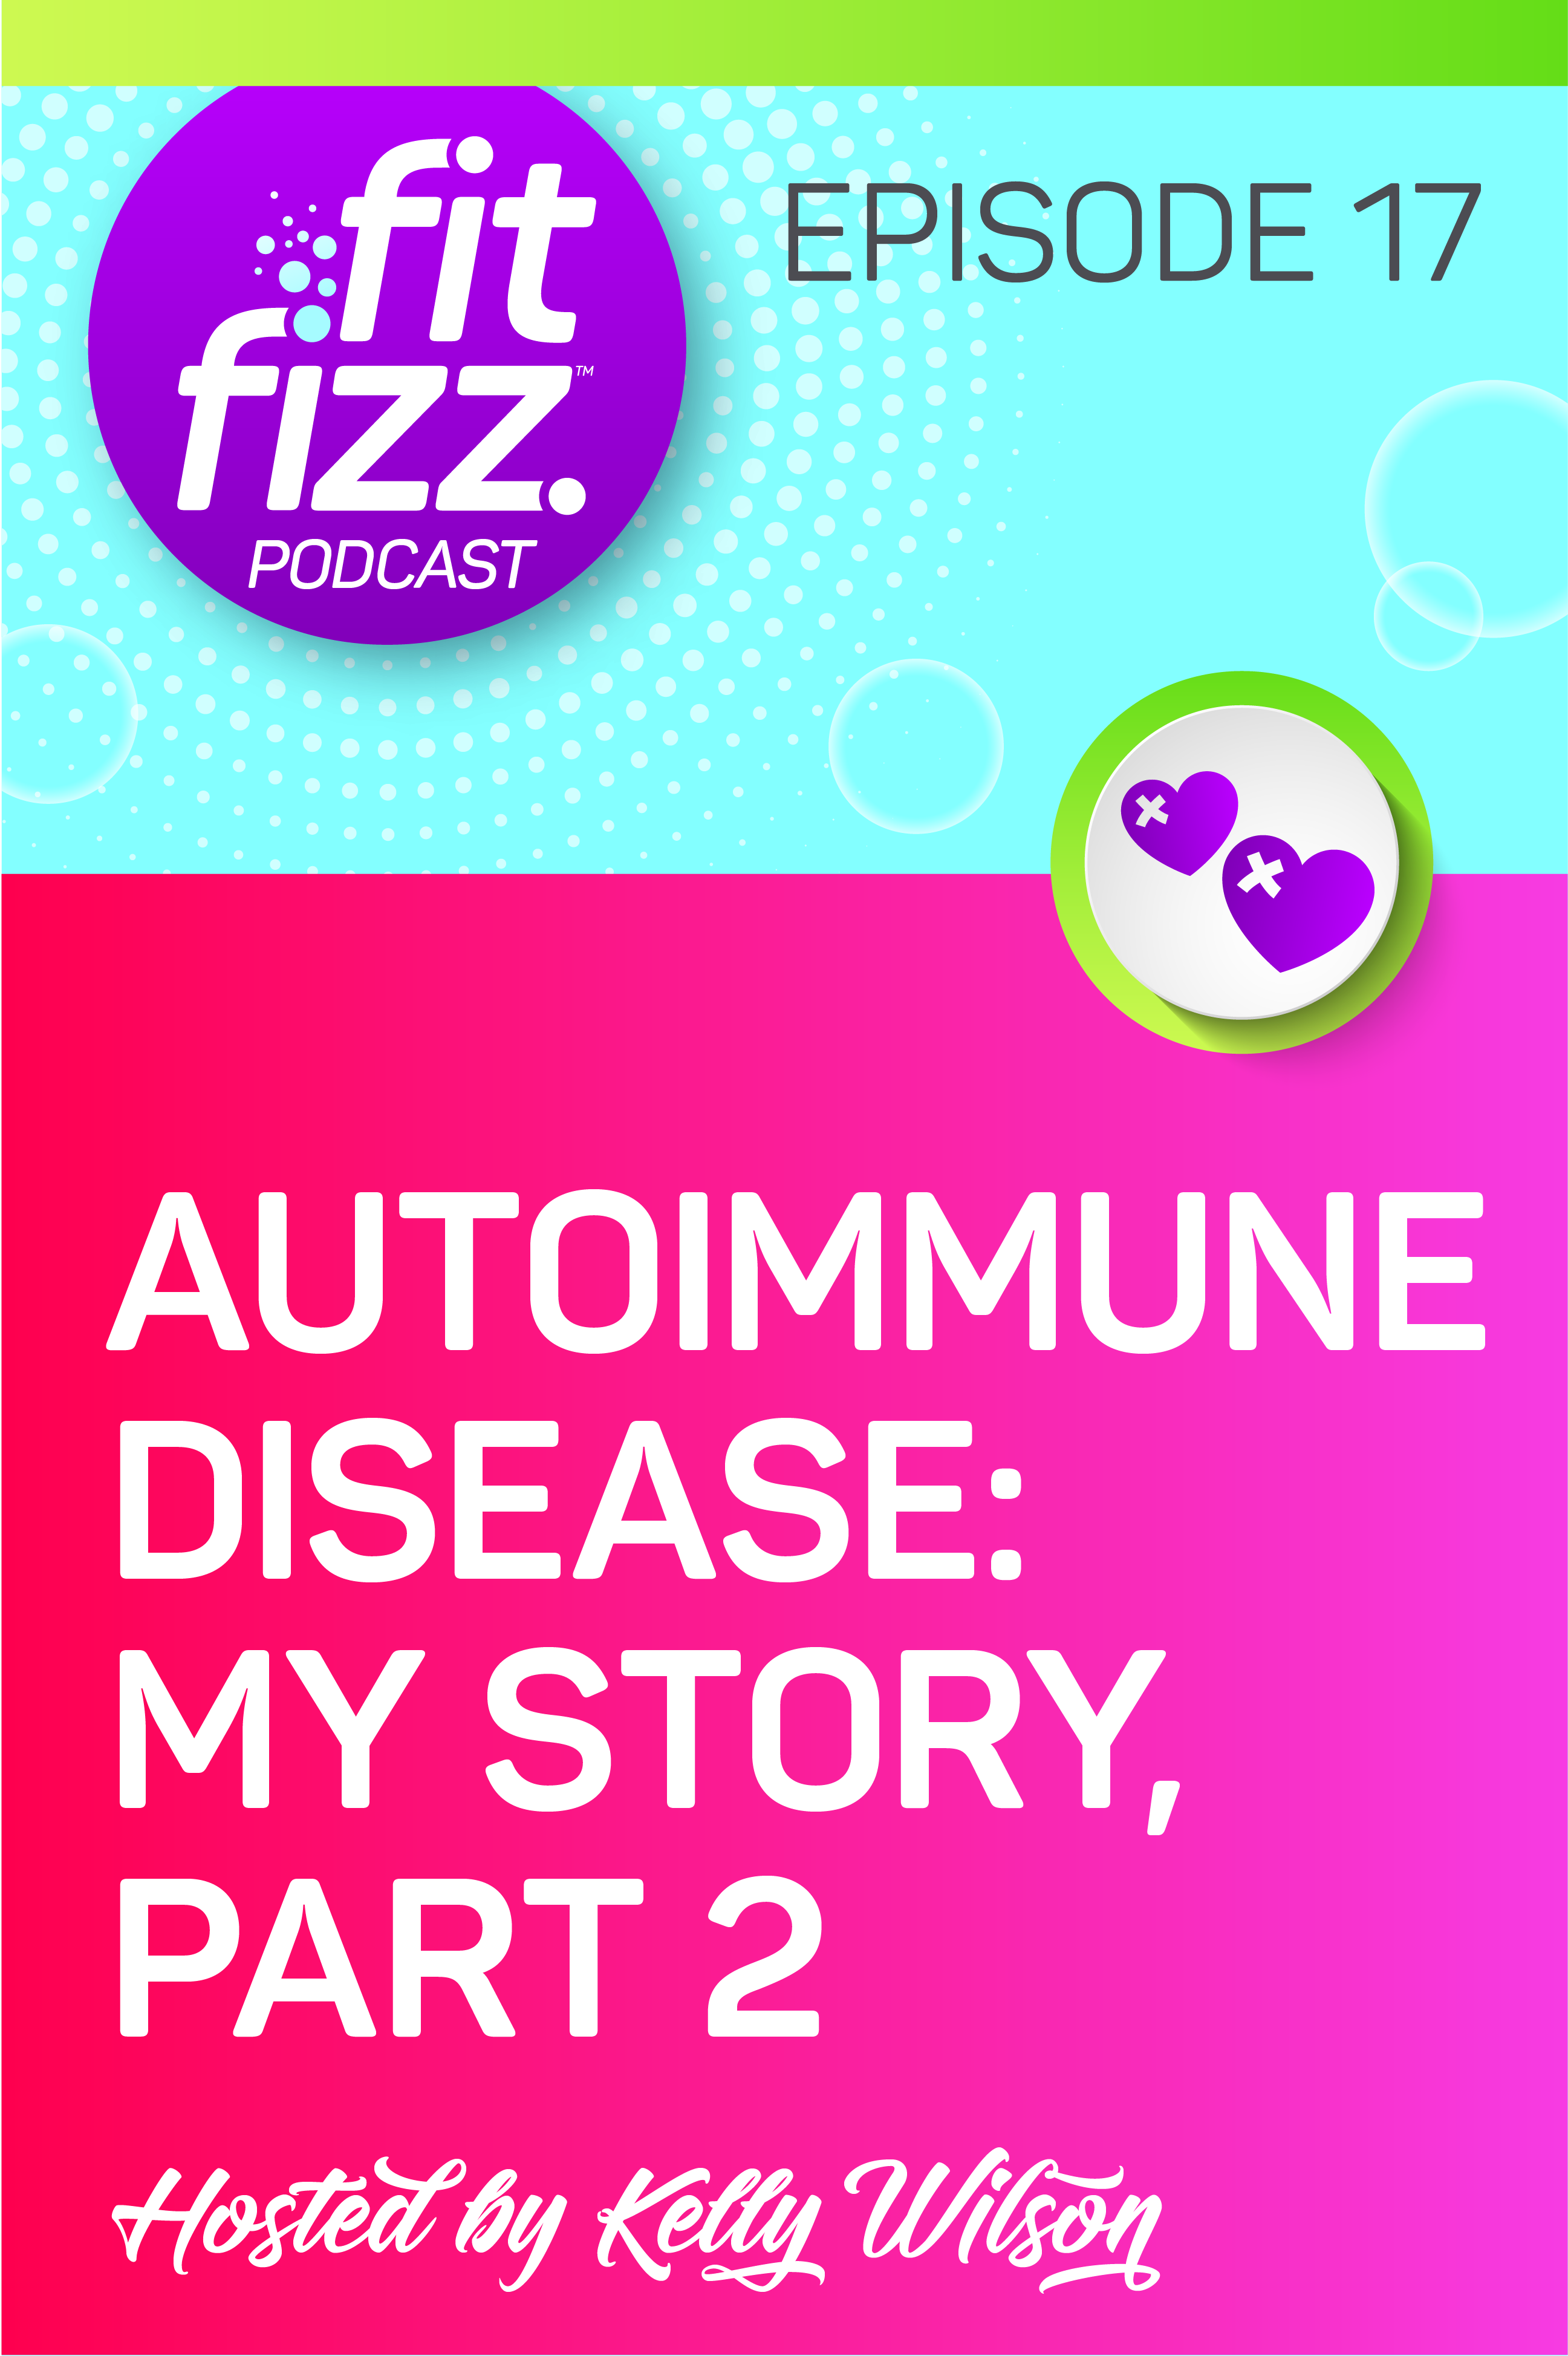 FitFizz Podcast Ep. 17: Autoimmune Disease, My Story, Part 2: Today is the continuation of my autoimmune disease story. I gave you part one in Episode 7. Today I'm explaining what it was like when I was at the worst of it. There was a long list of food sensitivities, pain, brain fog, and a scary overall feeling of disorientation for many months.